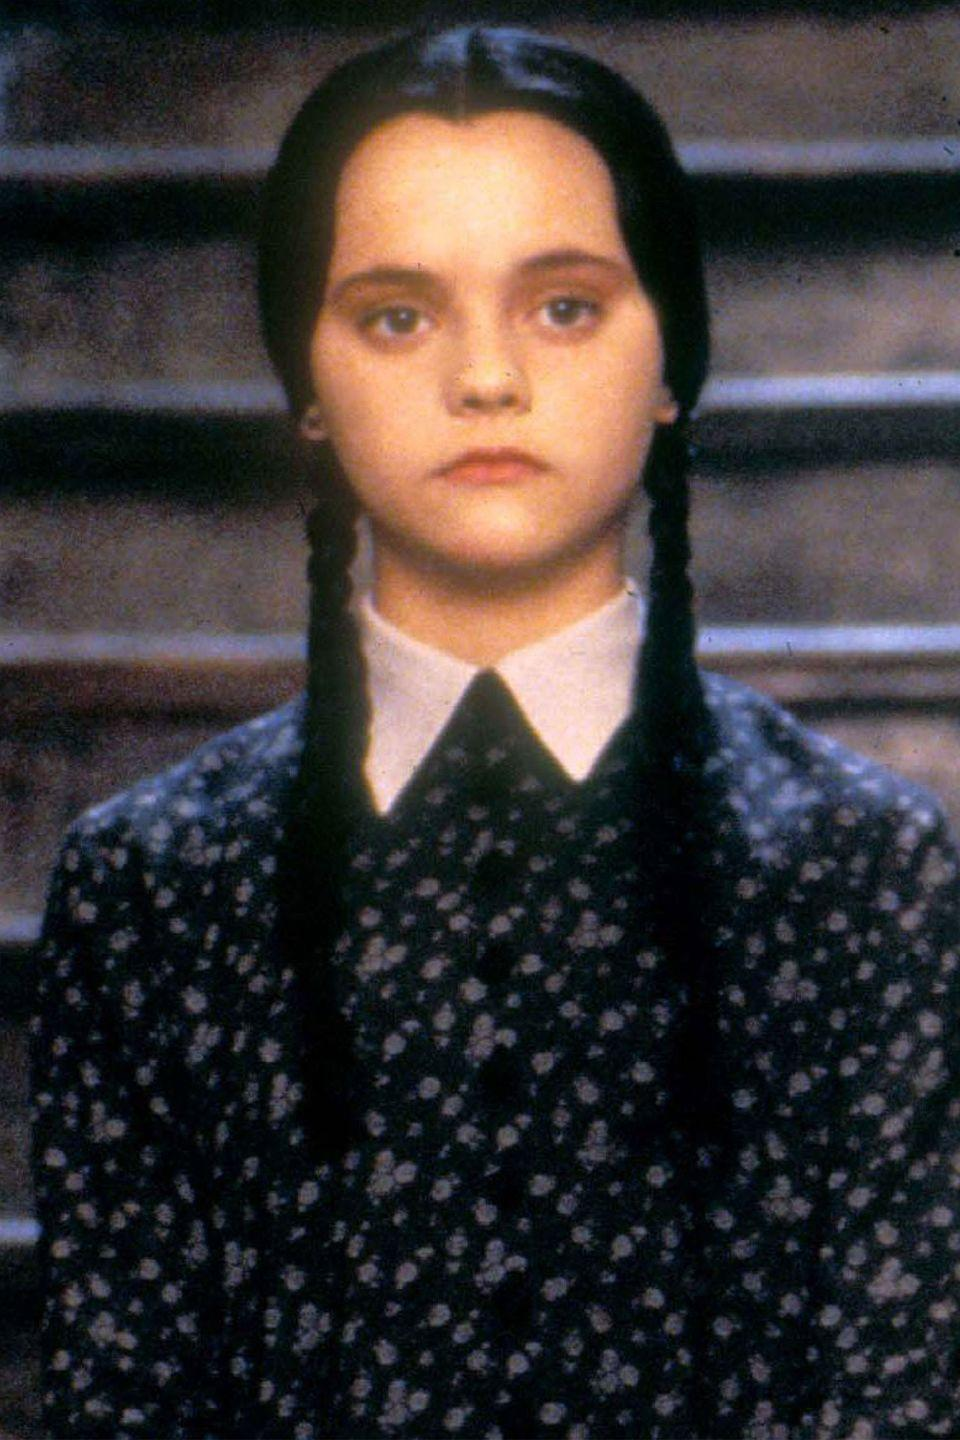 <p>This Halloween costume goes without explaining. Wednesday Addams was every creative girl's favorite rebel in the '90s. Just braid your hair and put on an unimpressed expression for this one. </p>